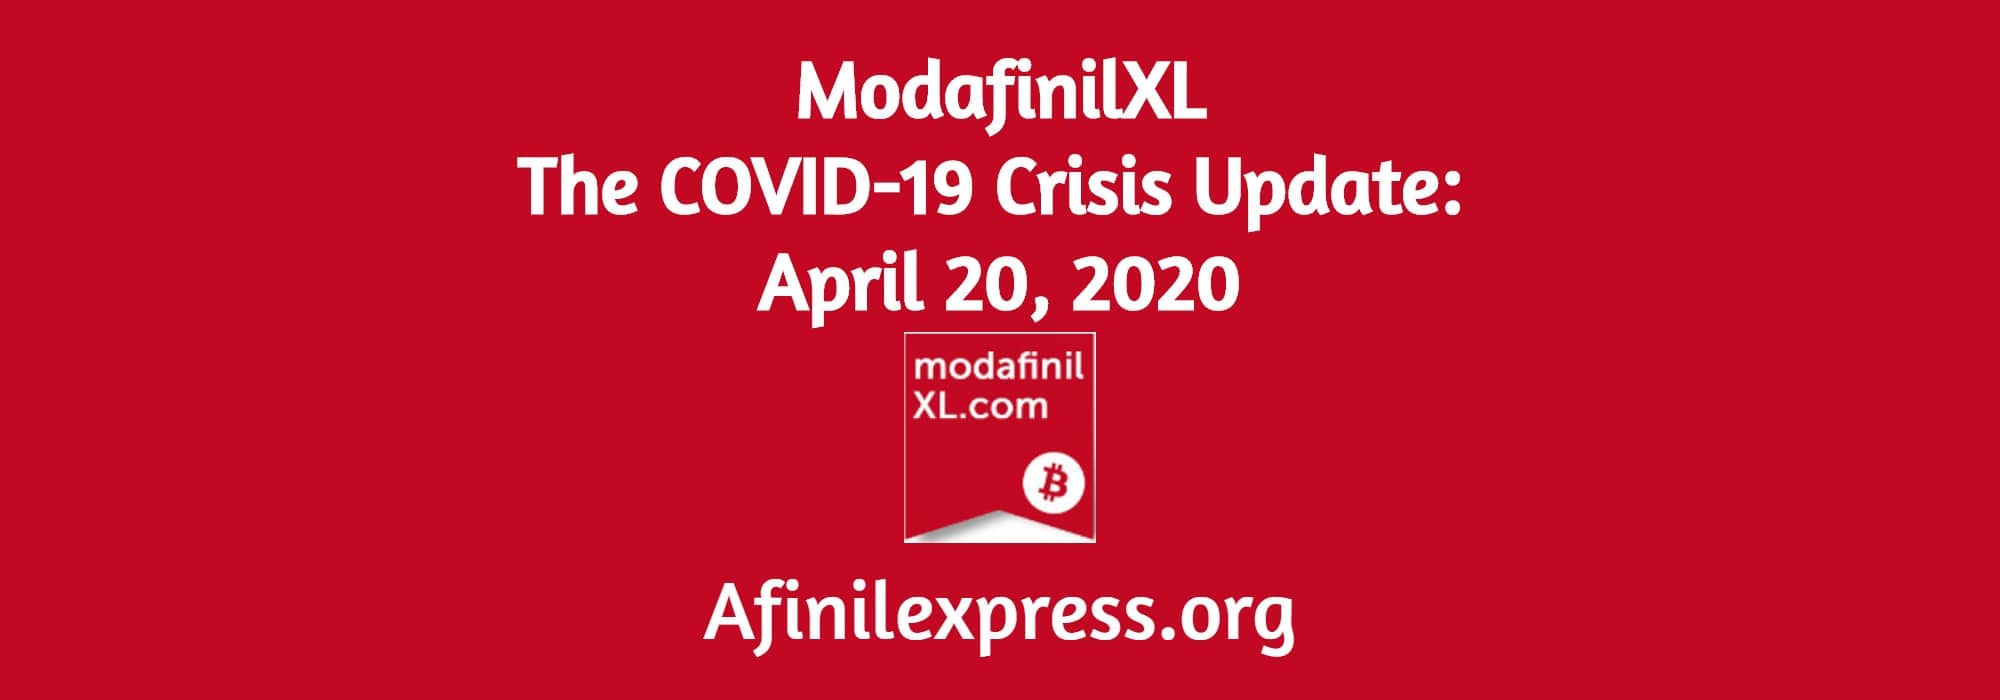 The COVID-19 Crisis Update: April 20, 2020